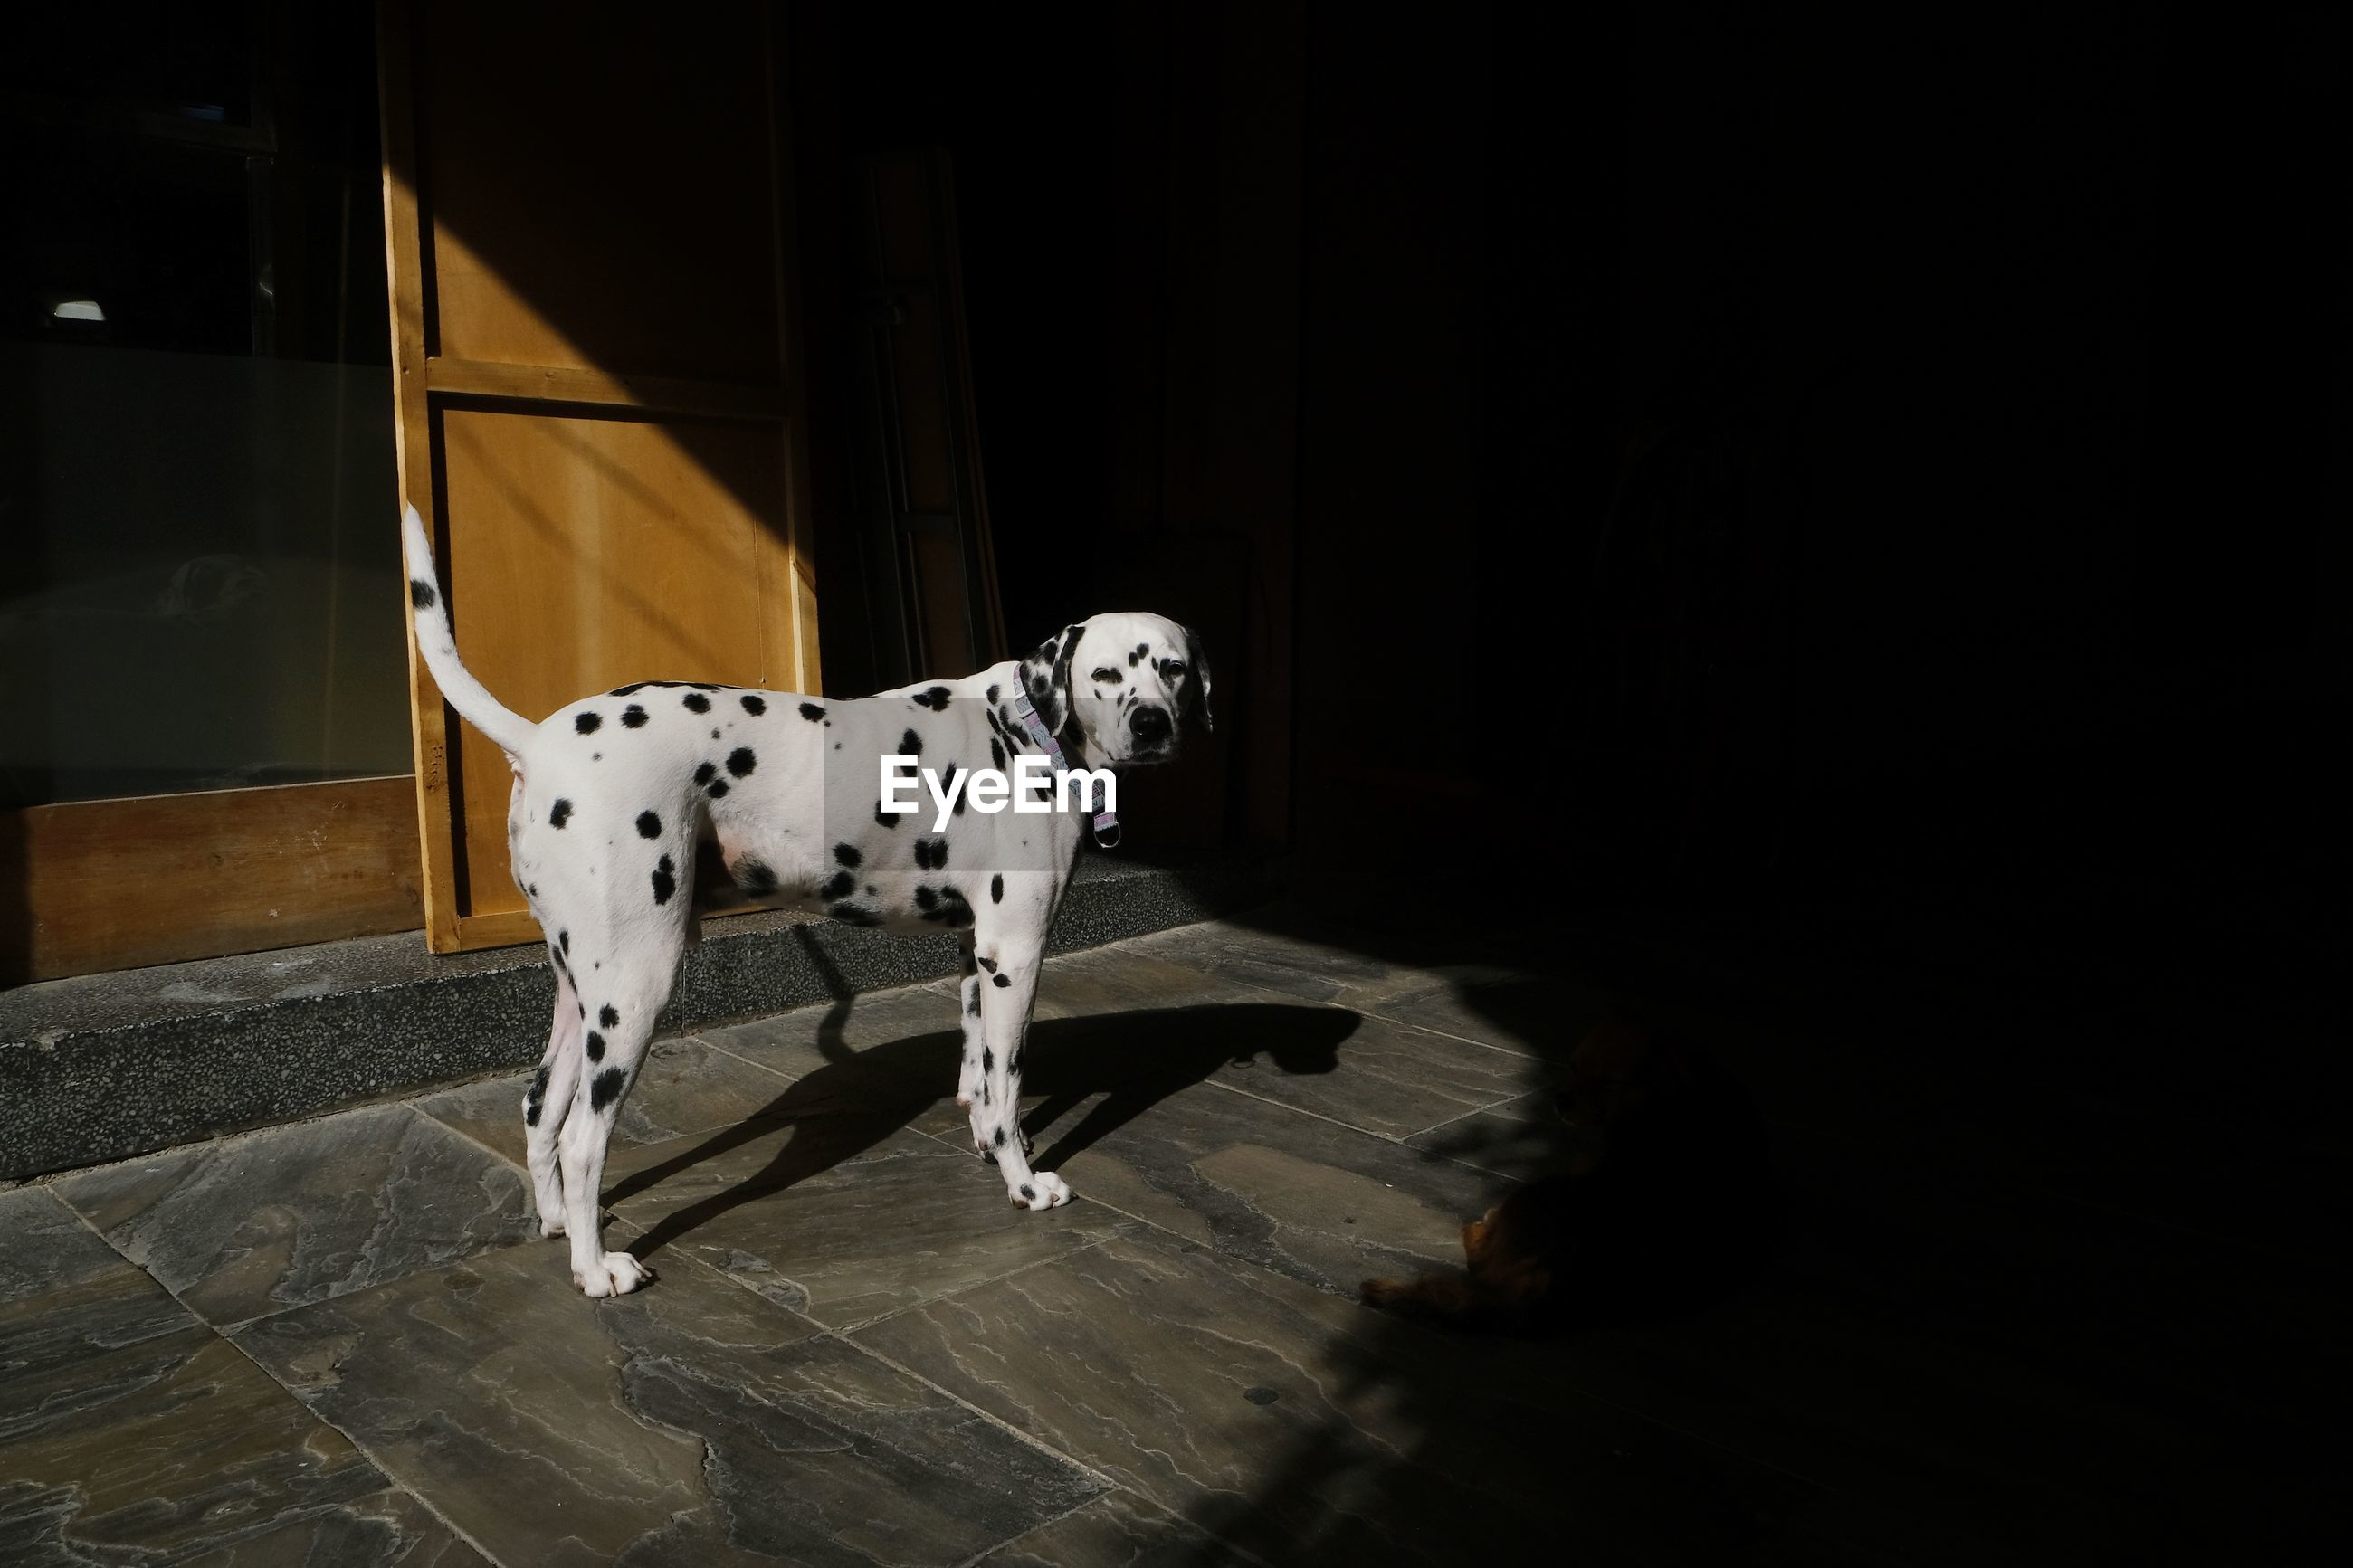 DOG STANDING IN THE HOME